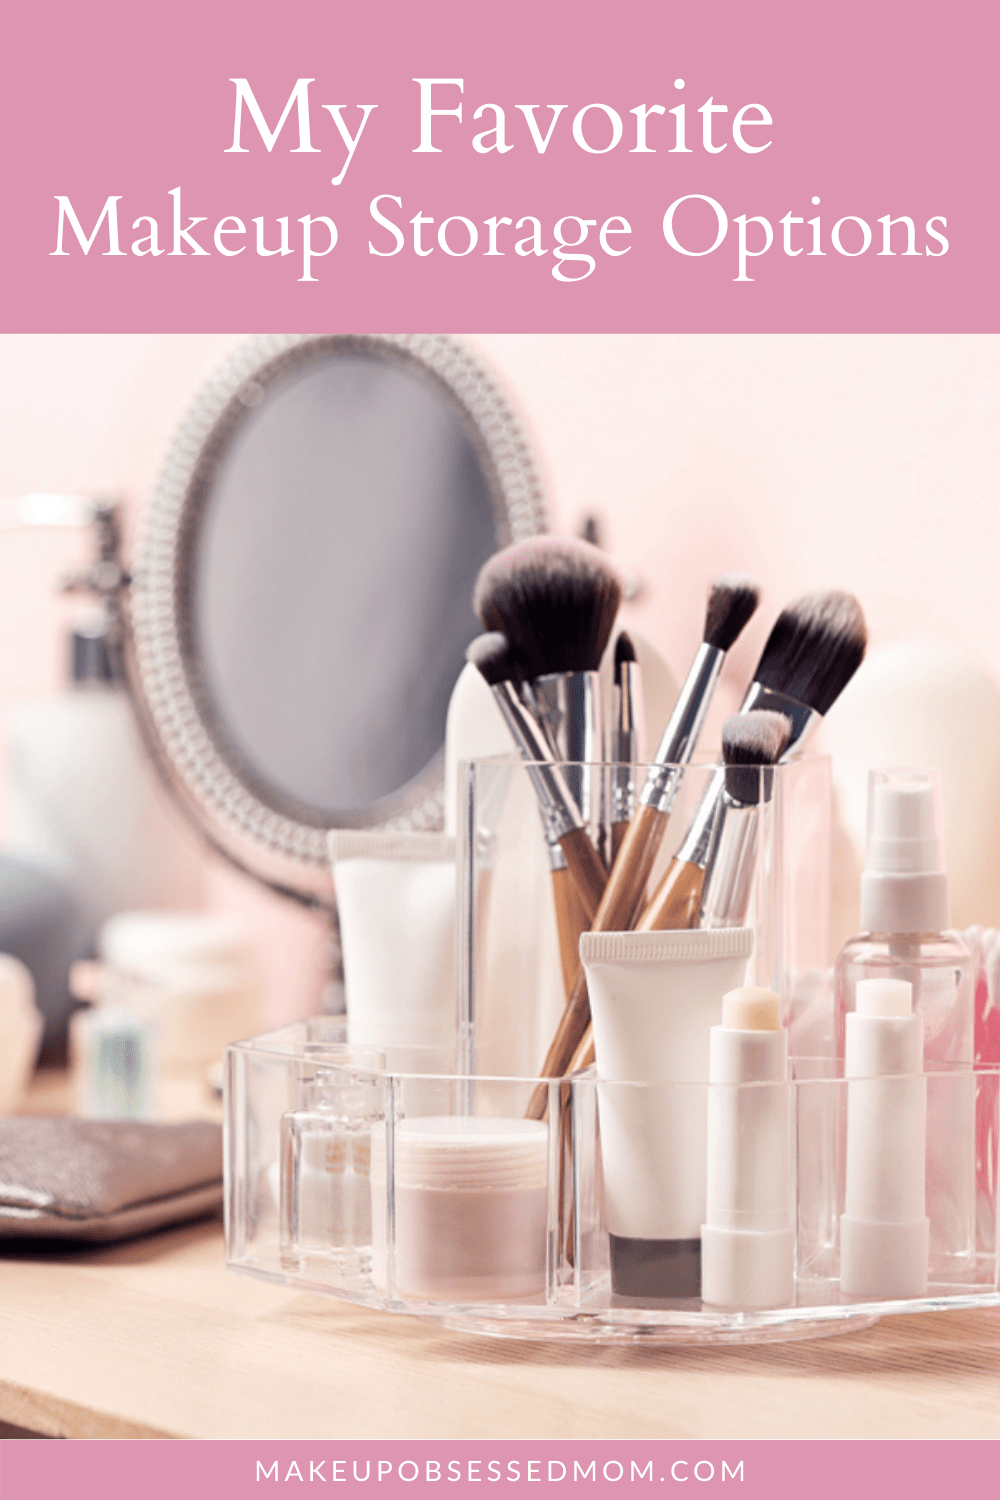 My Favorite Makeup Storage Options